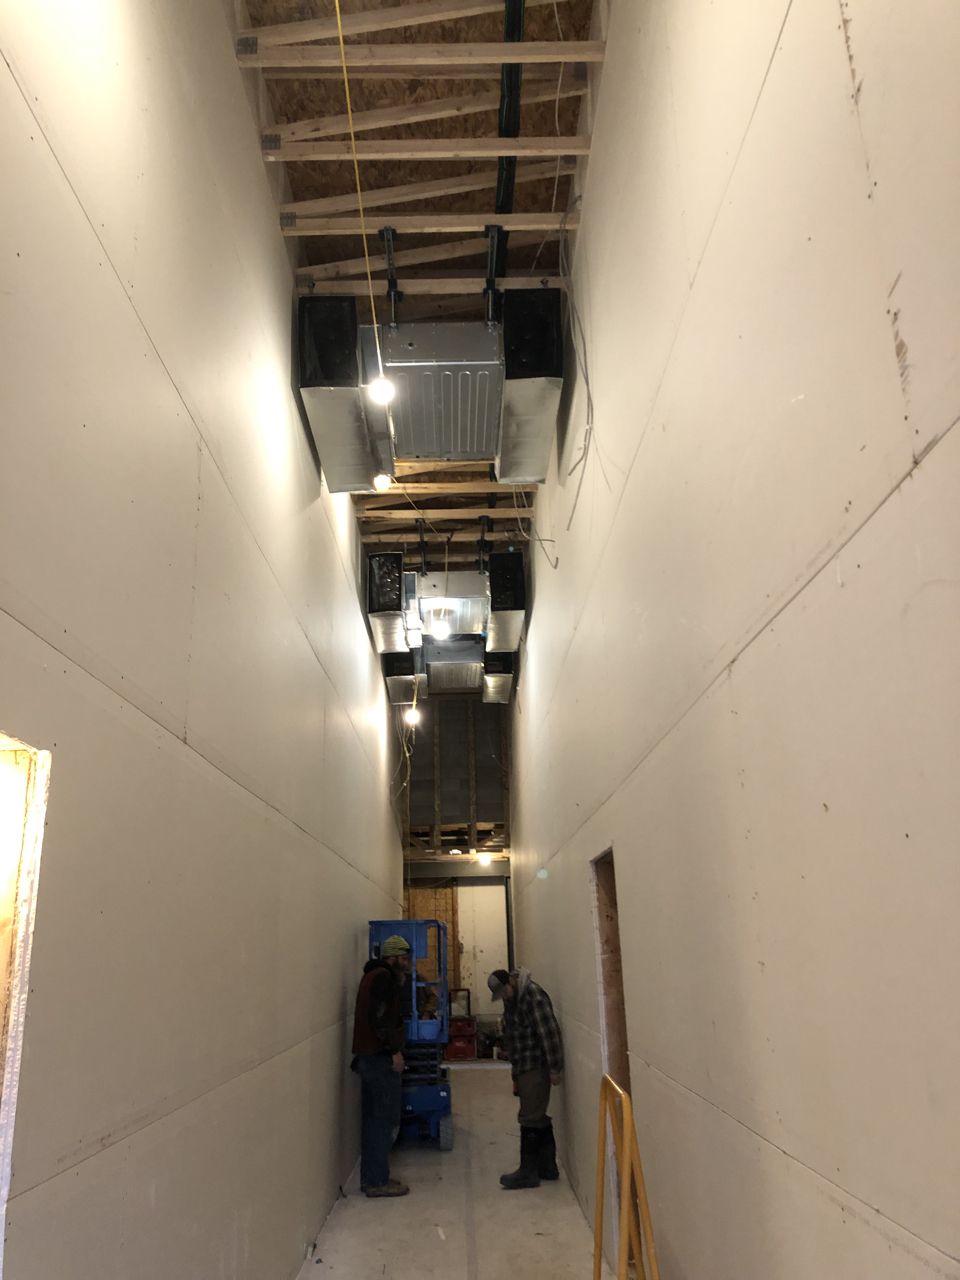 More work was done on the HVAC system until about mid-week when the guys came down with a pretty bad flu that is going around. Hopefully we will see some real progress next week.